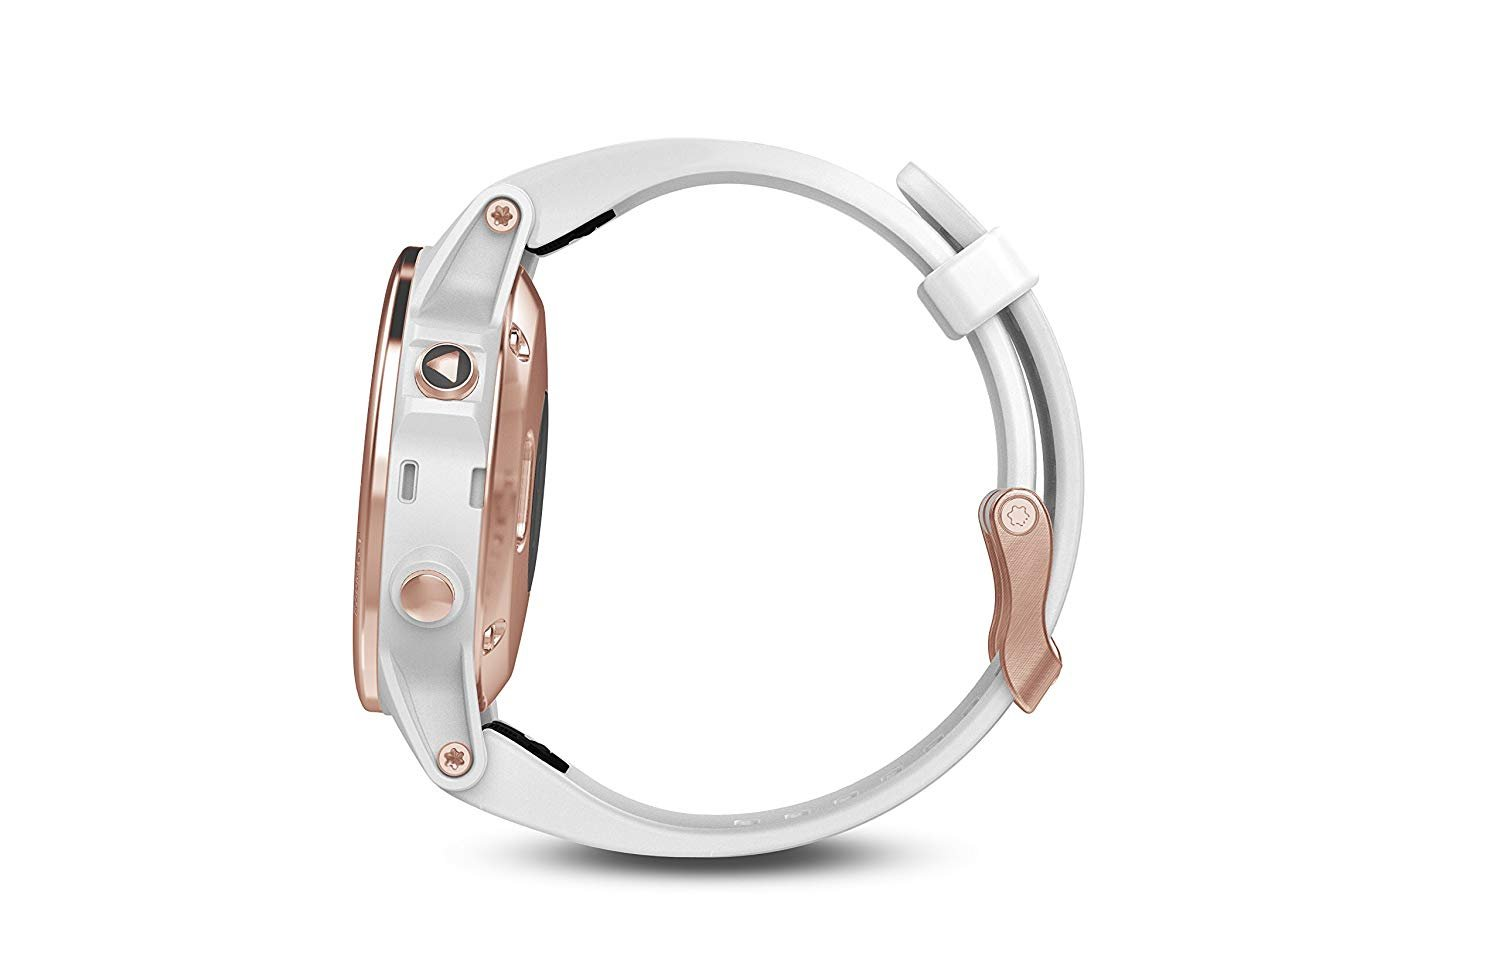 Garmin Fenix 5S - Sapphire, (Rose Gold/White Band) Bundle with PowerBank + USB Car Charger + USB Wall Charger (4 Items) by E Zee Electronics (Image #5)